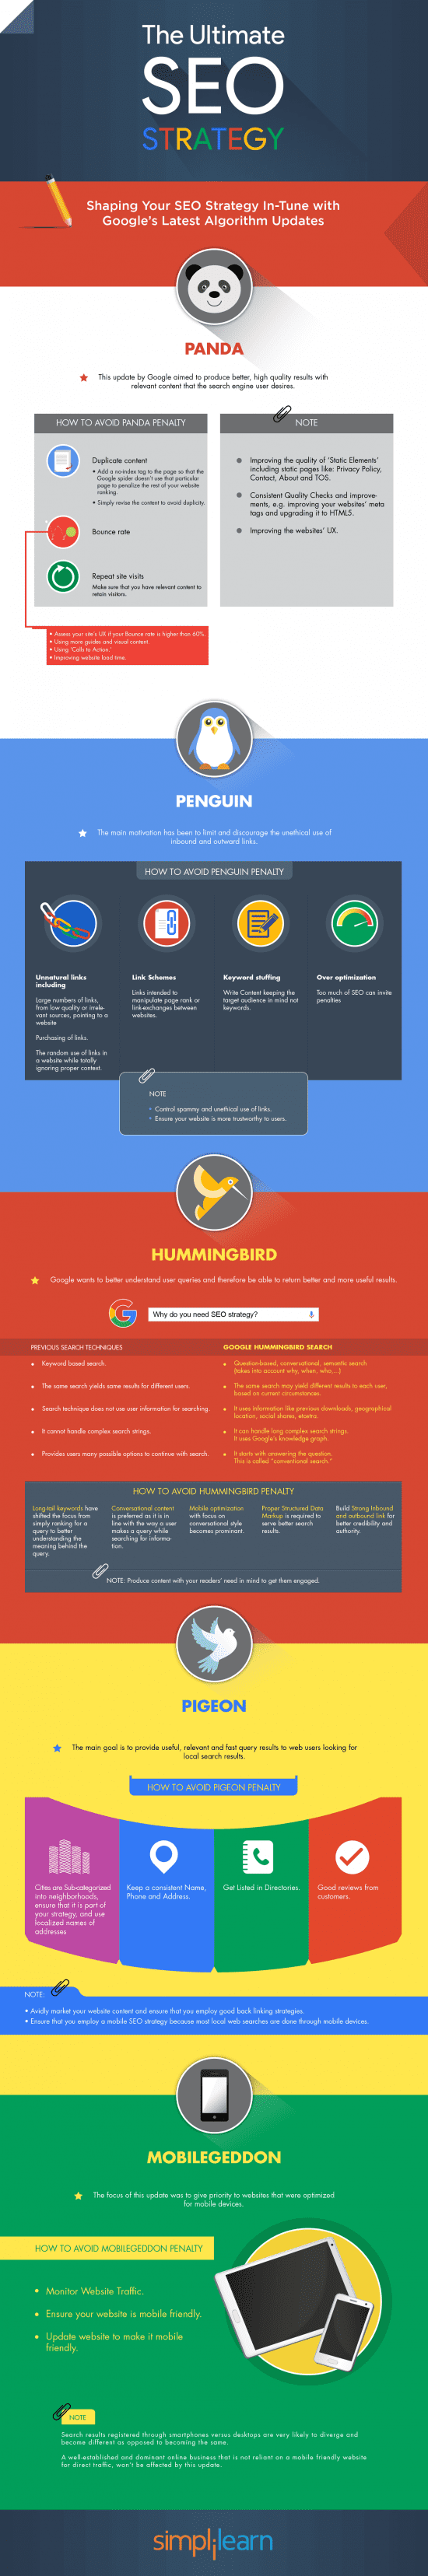 SEO-strategy-infographic